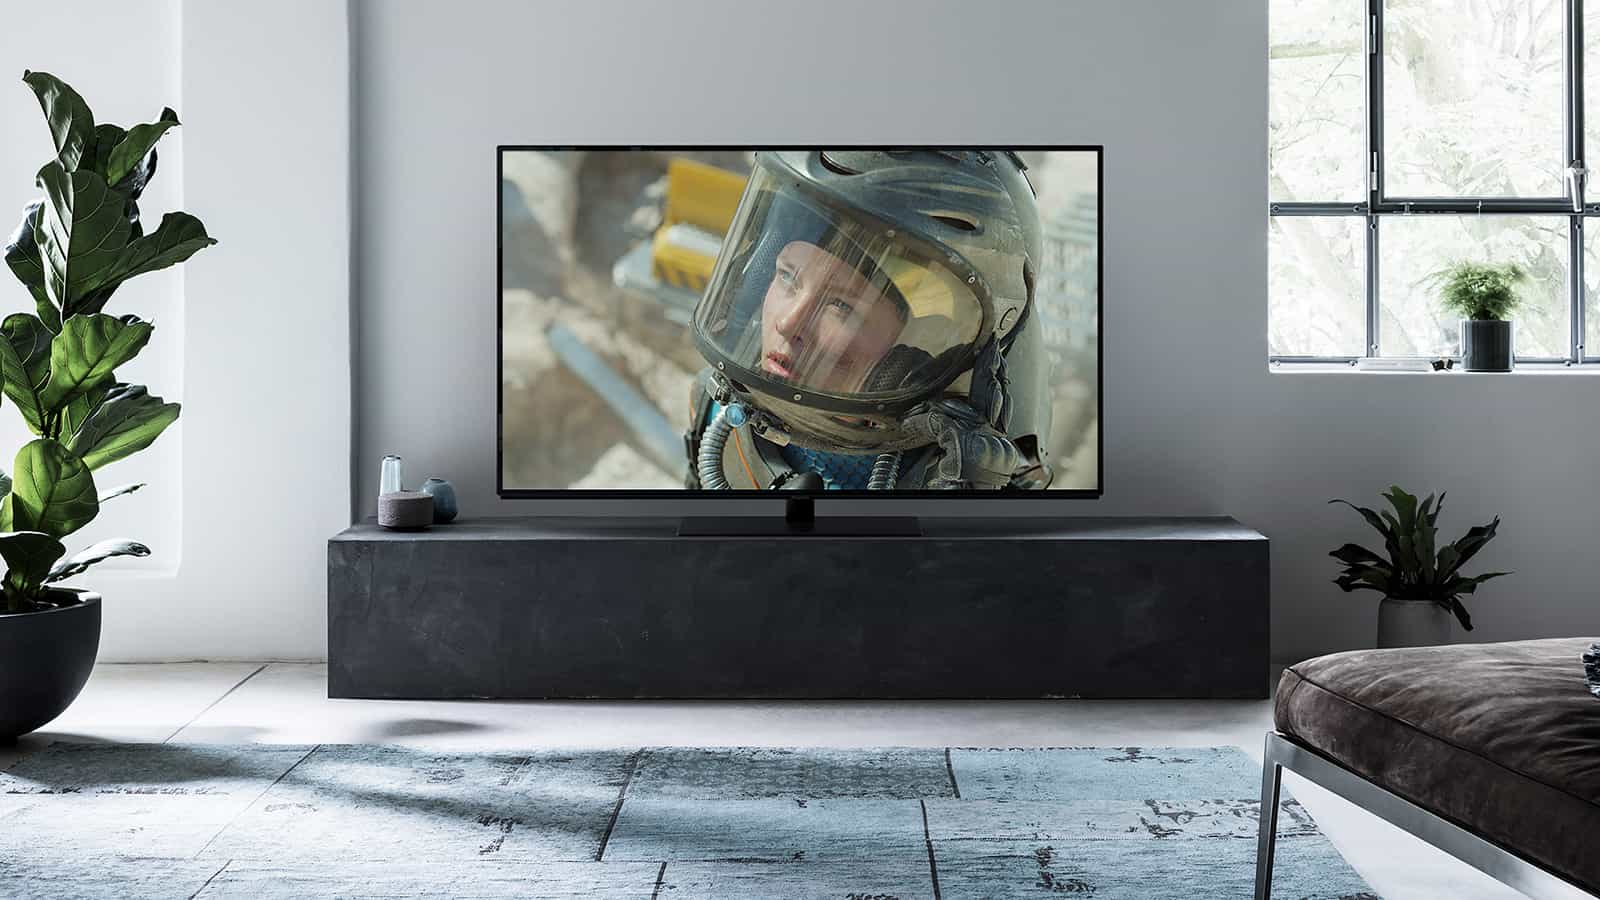 panasonic--fz950-and-fz800-oled-series